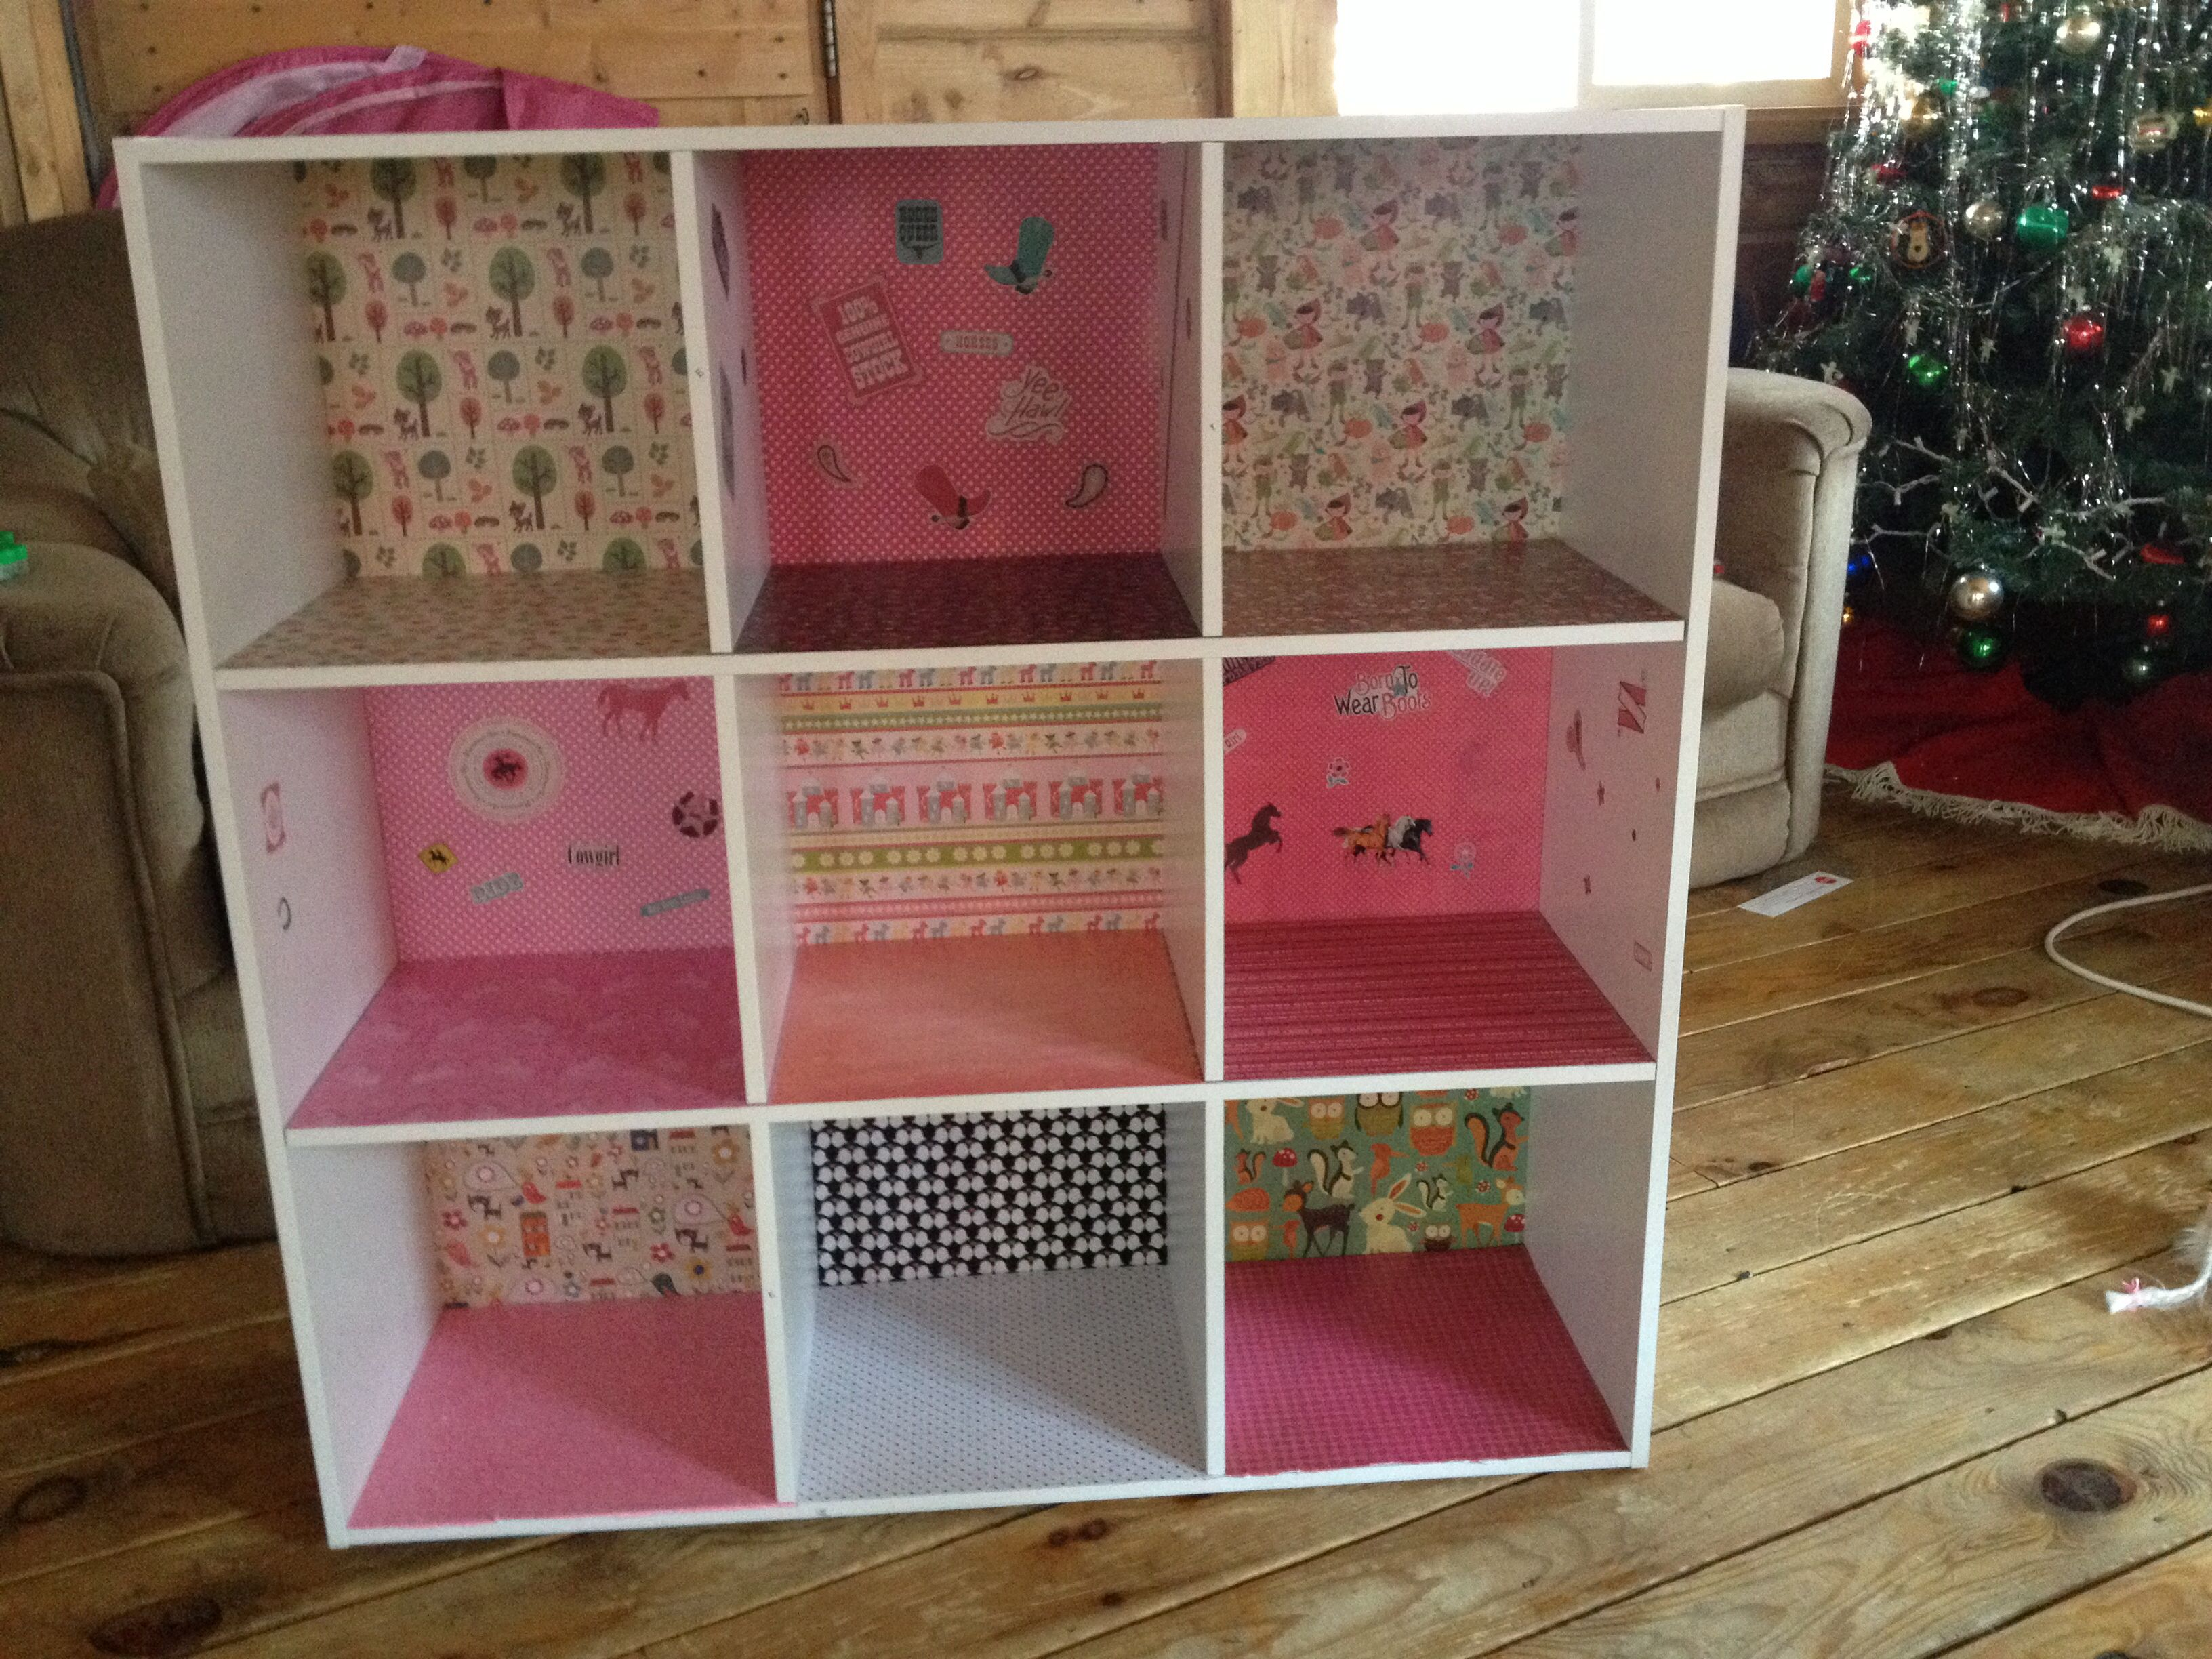 Design Homemade Doll Houses diy dollhouse menards 9 cubby bookshelf assembly required 20 18 12x12